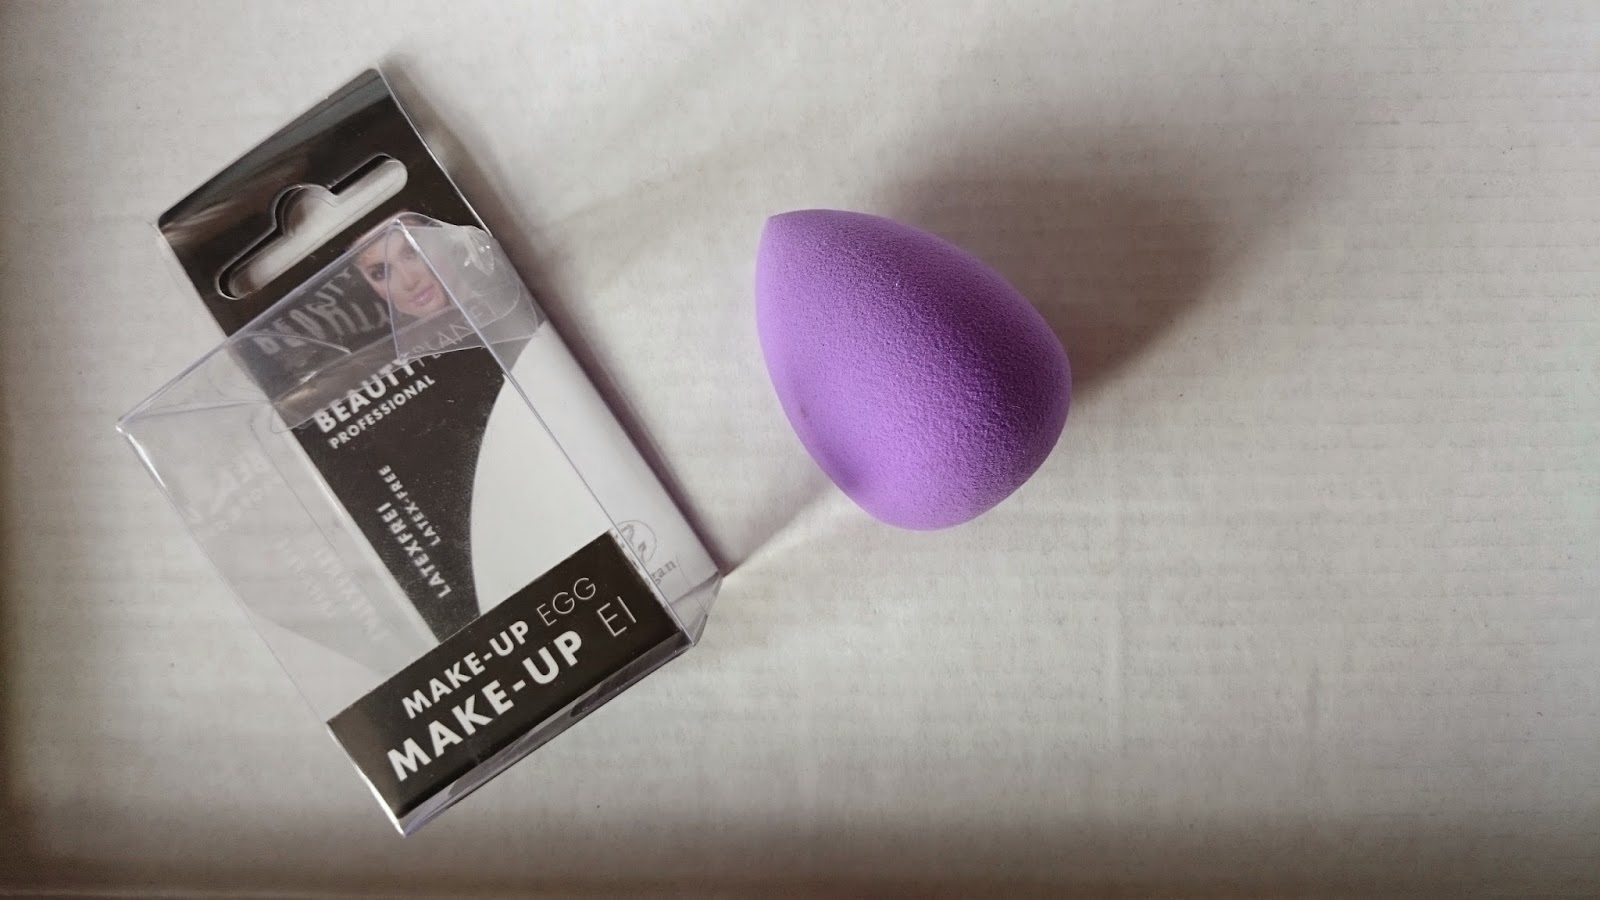 Jak Beauty Blender, czyli Make-Up Egg  od Beauty Planet